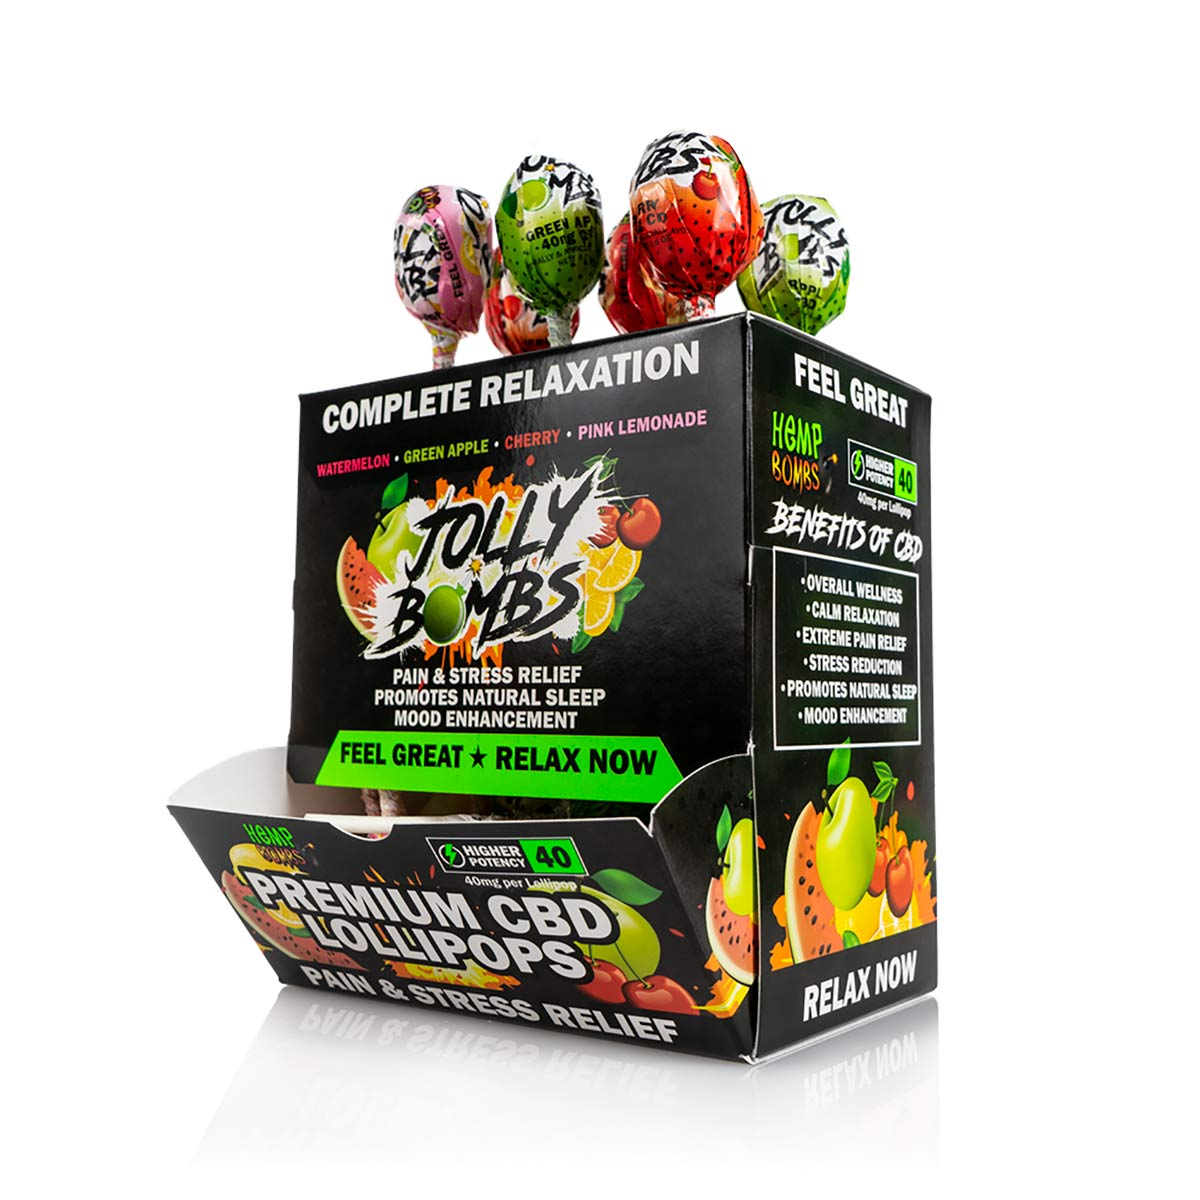 hemp-bombs-cbd-lollipops-jolly-bombs-4-count-40mg-of-cbd-per-lollipop